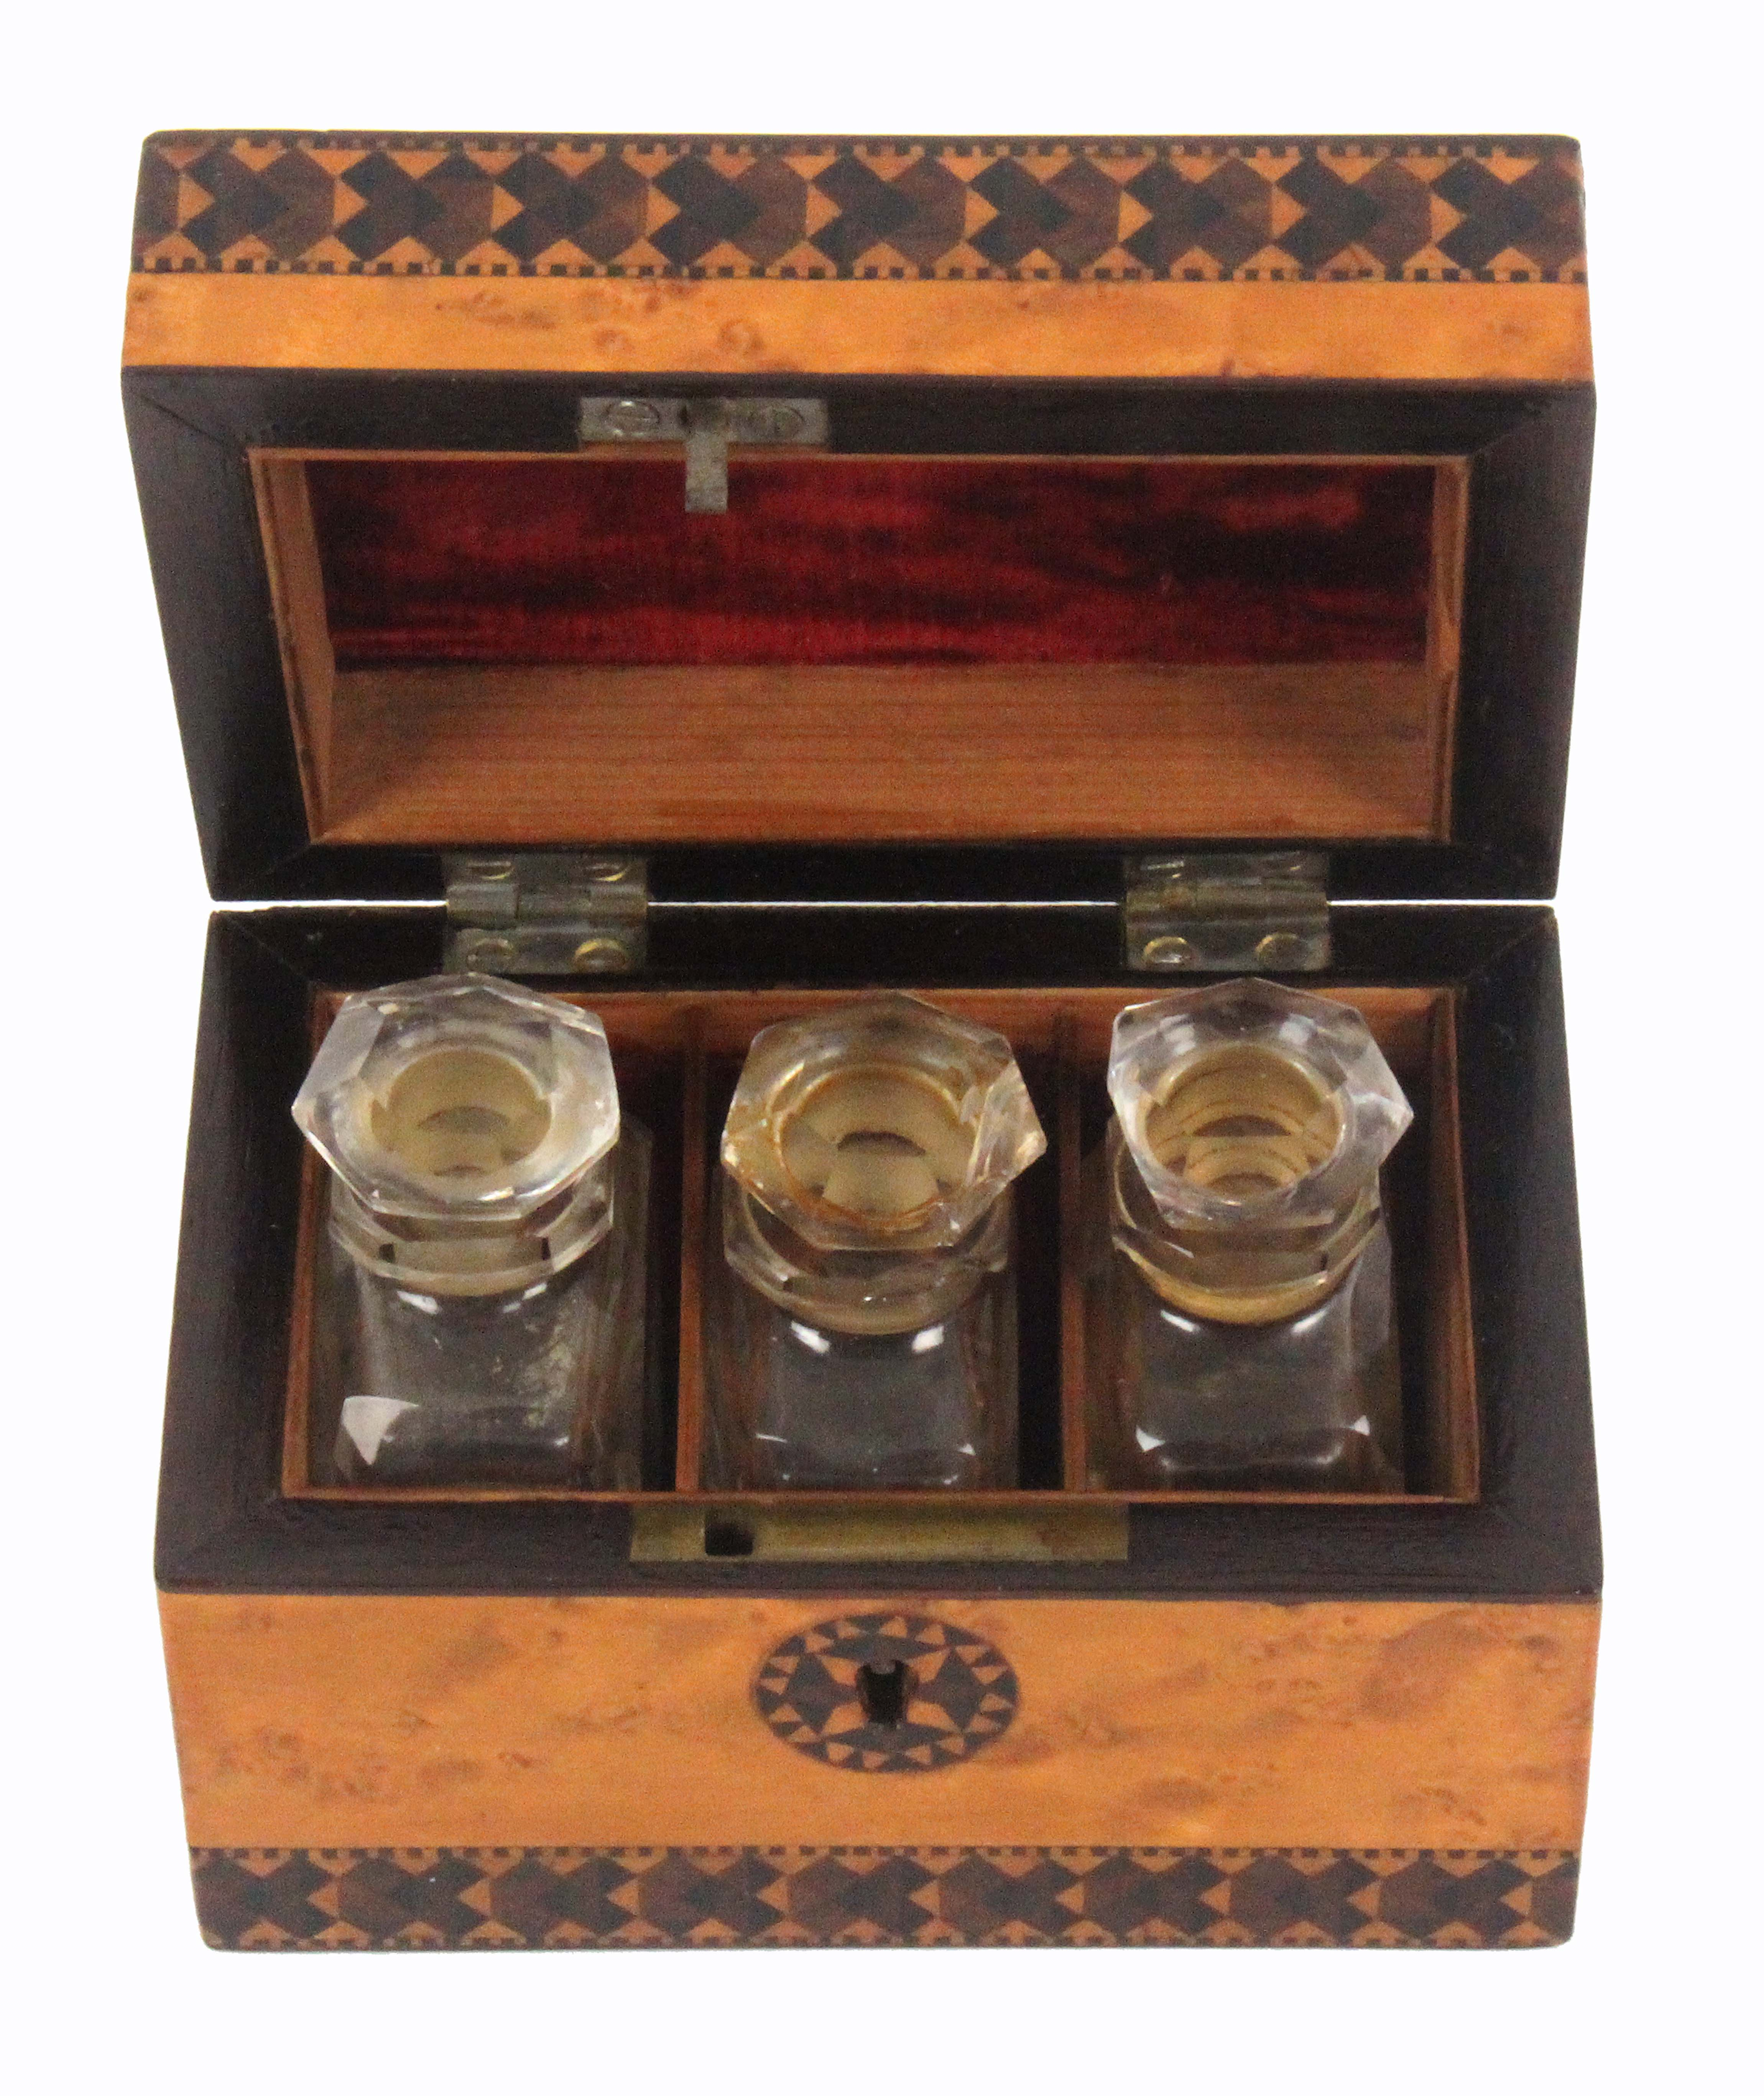 A Tunbridge ware scent bottle box, of rectangular form, the burr maple ground with two bands of - Image 2 of 2